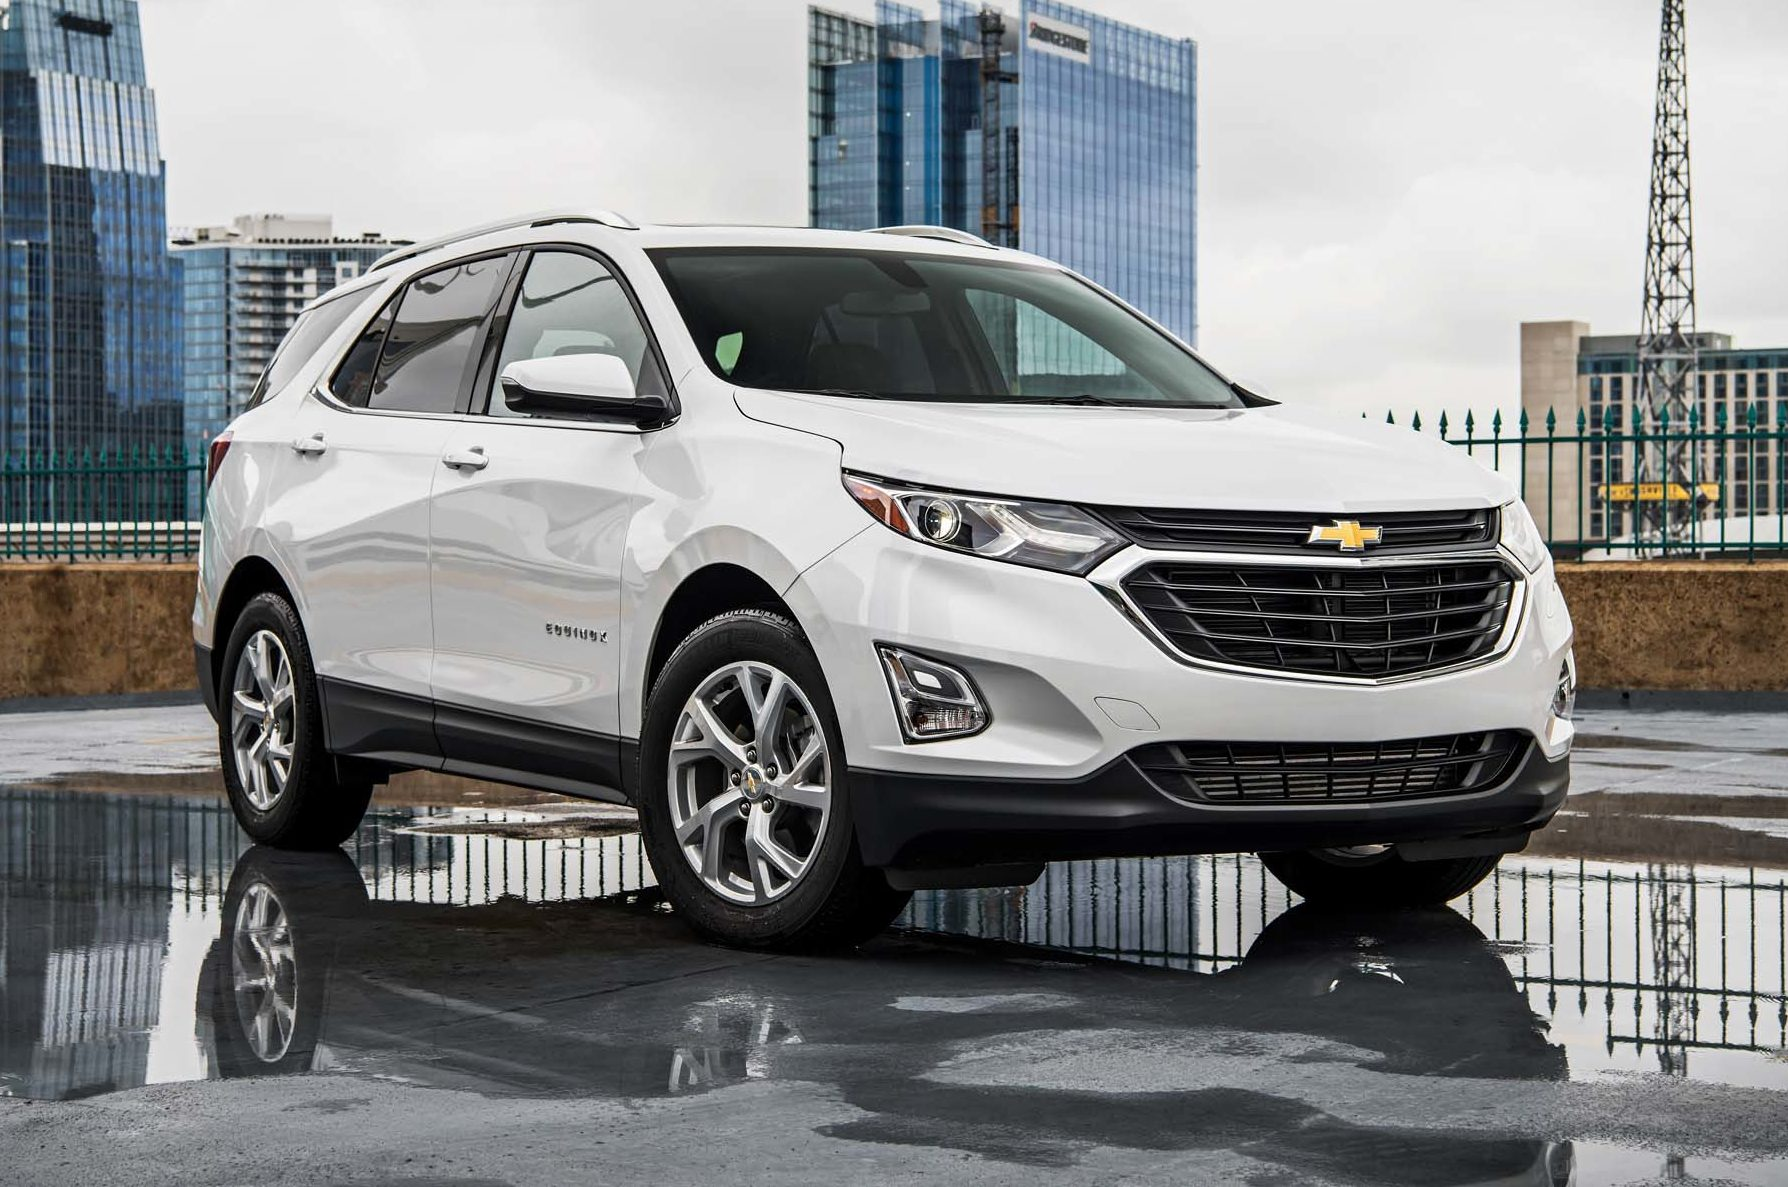 Chevrolet Equinox Diesel Claims 577 Miles of Range ...